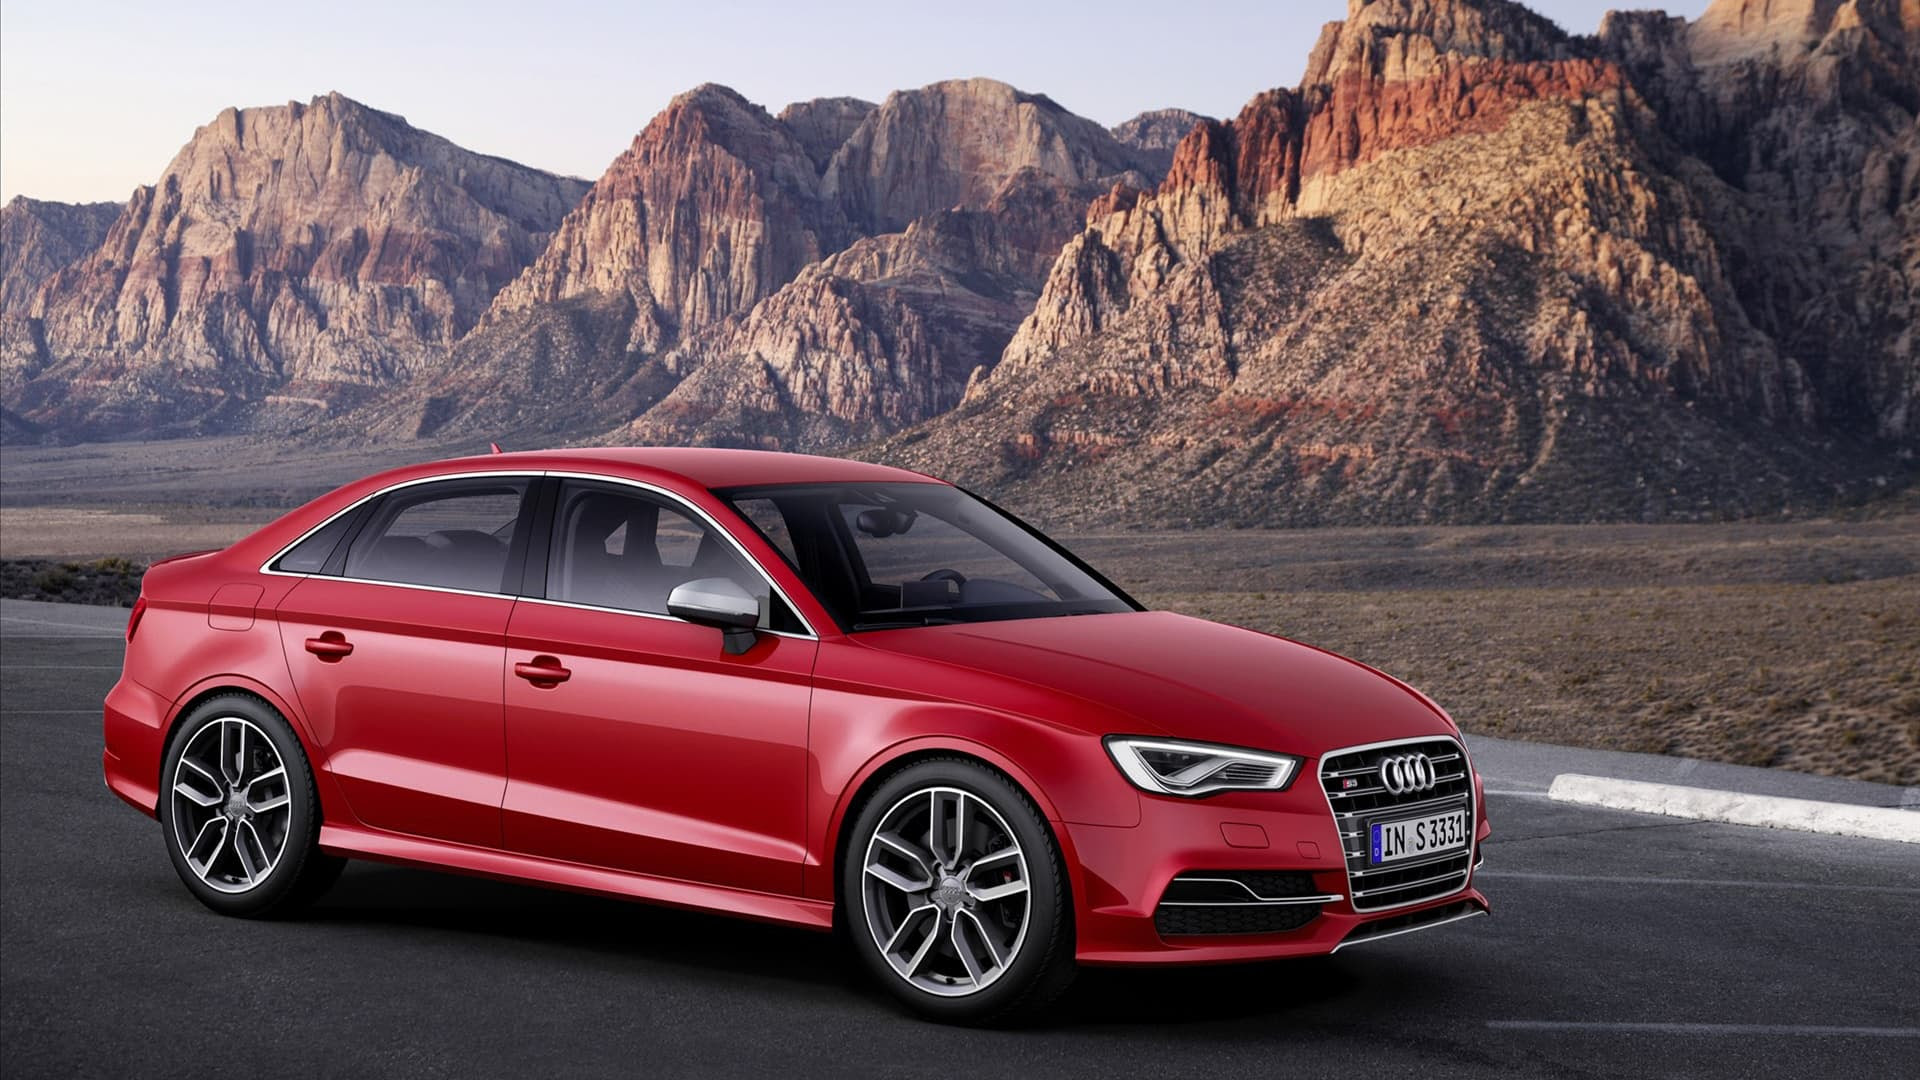 Coltharpfamilygoldenyears 20 Awesome Audi A3 Sedan Red